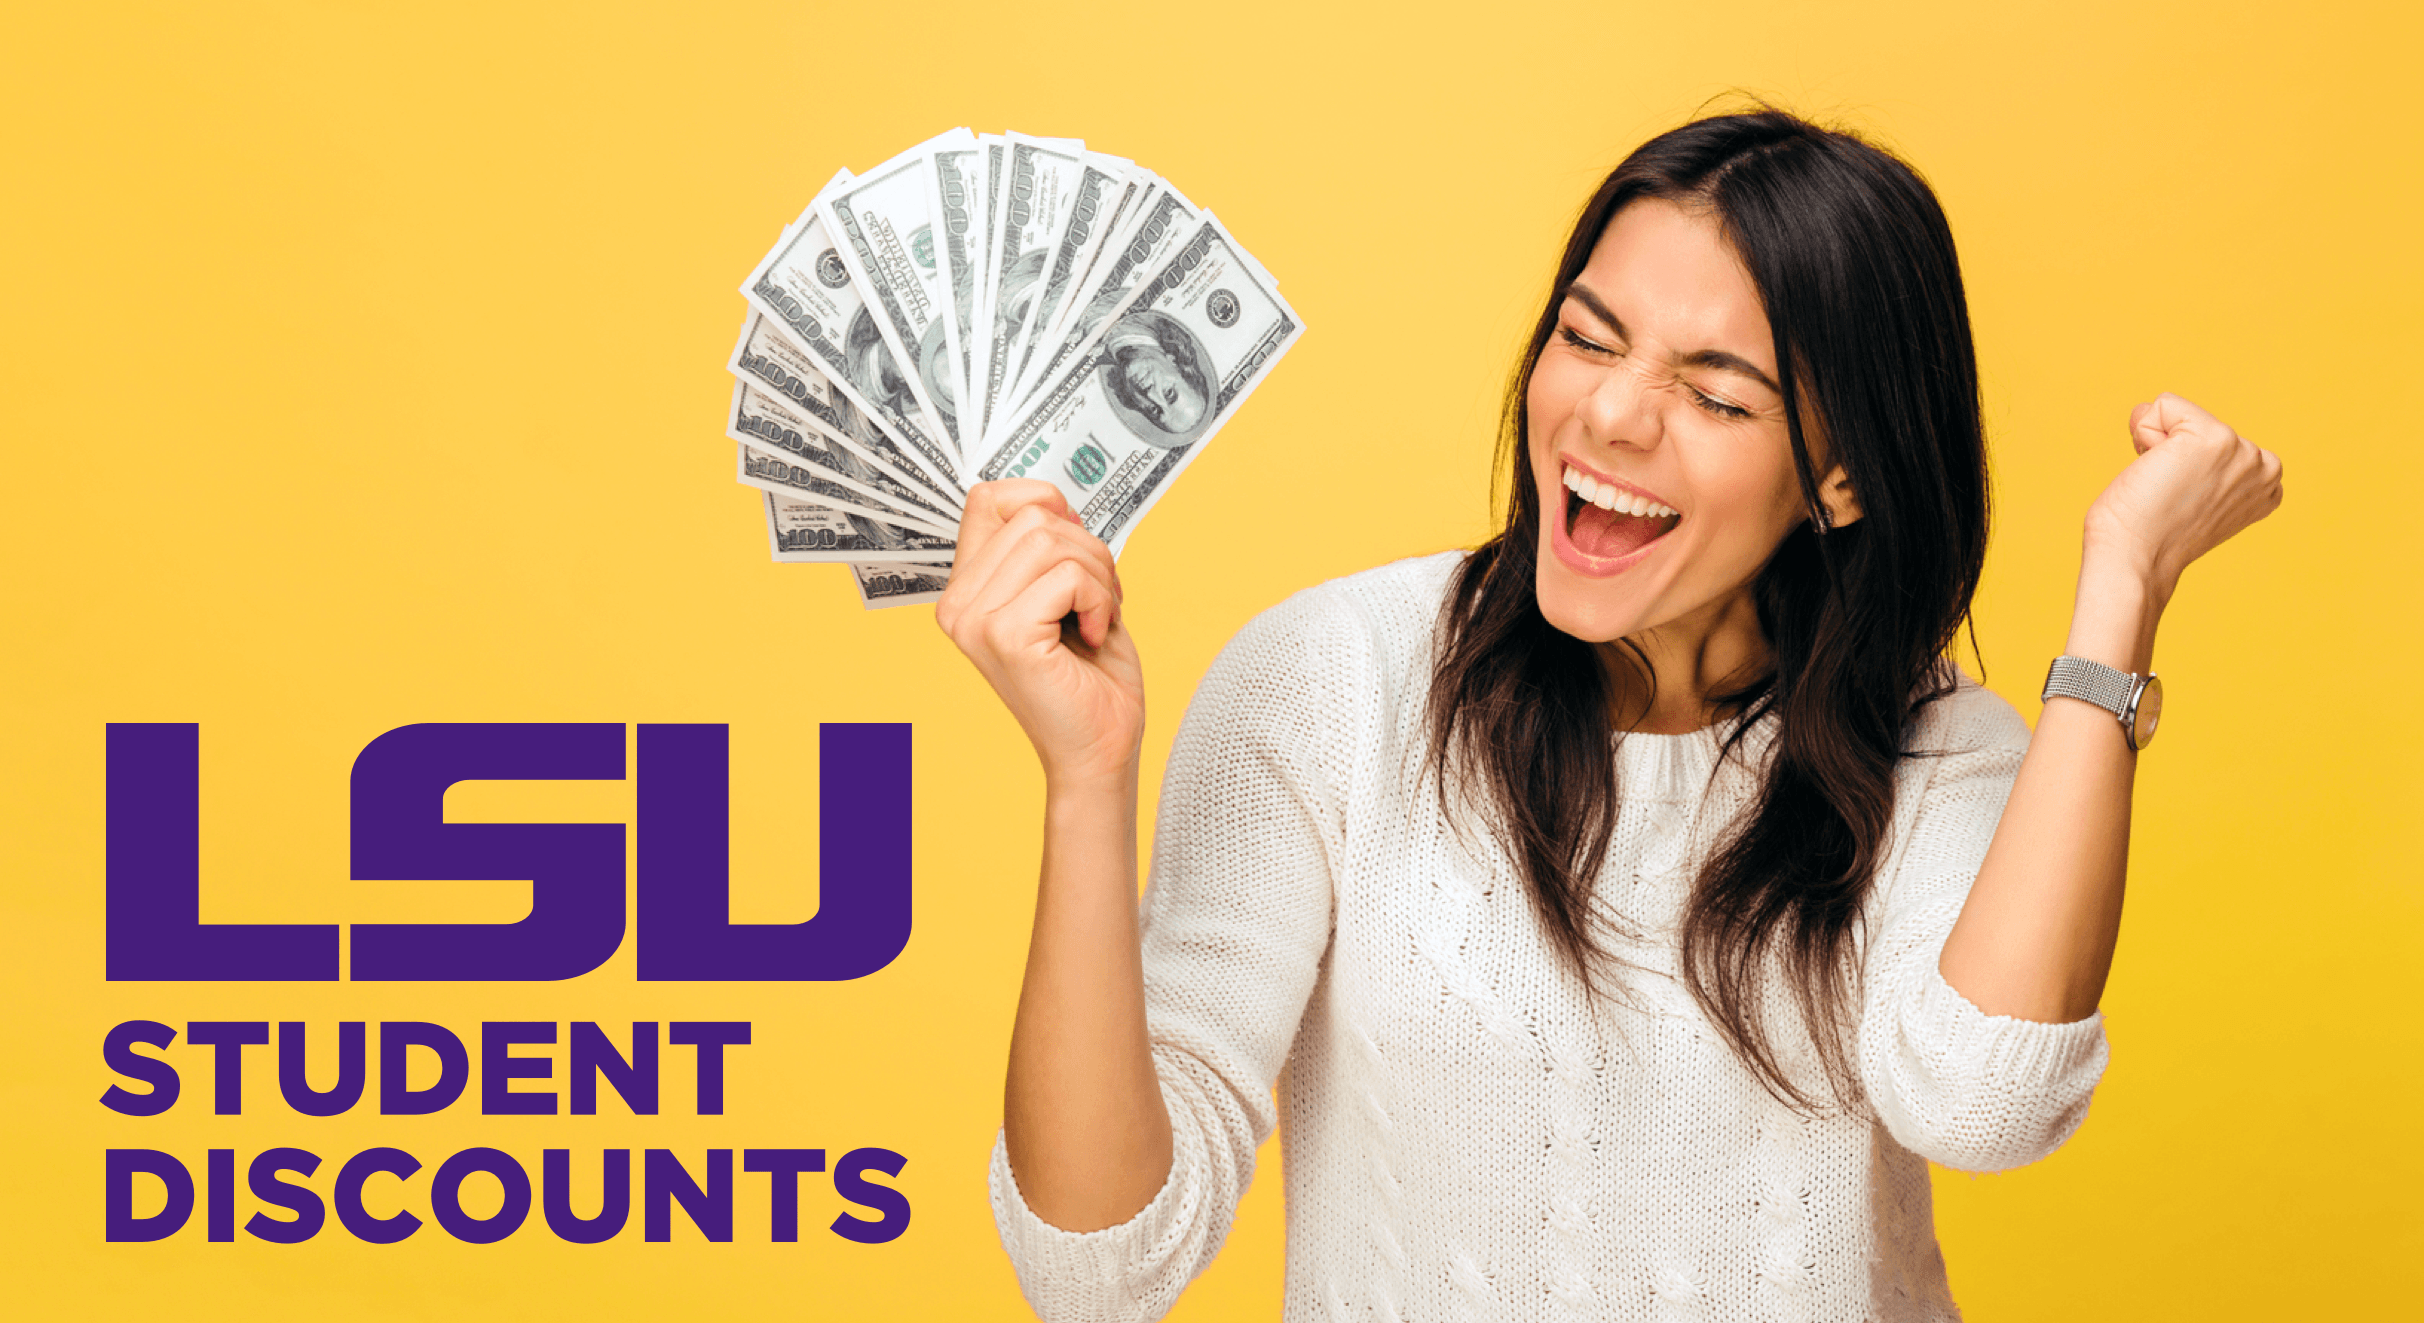 400+ LSU Student Discounts in 2019